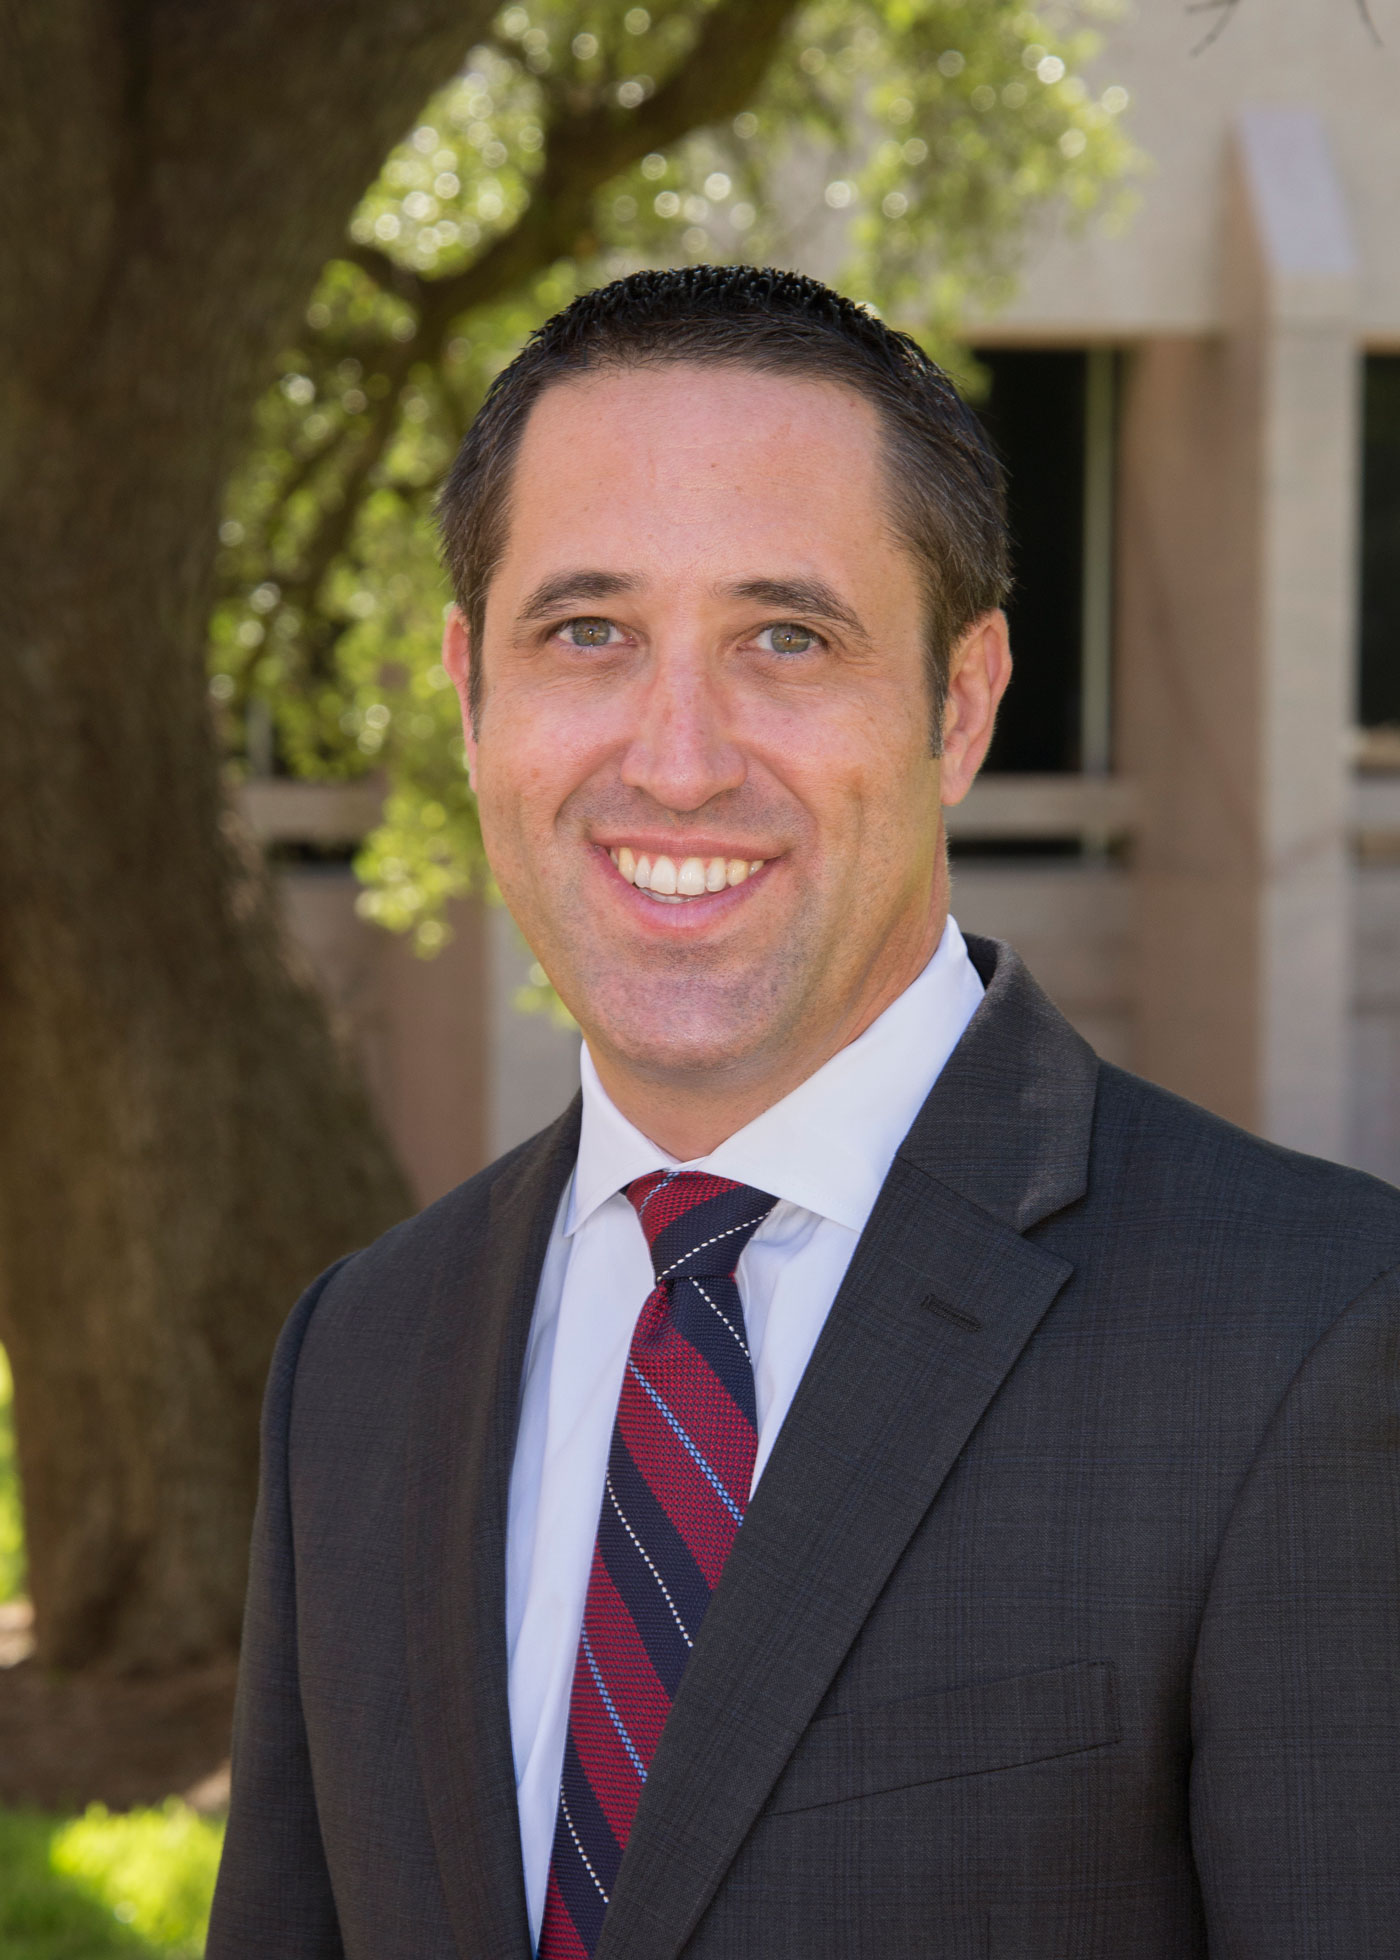 Glenn Hegar, Texas Comptroller of Public Accounts